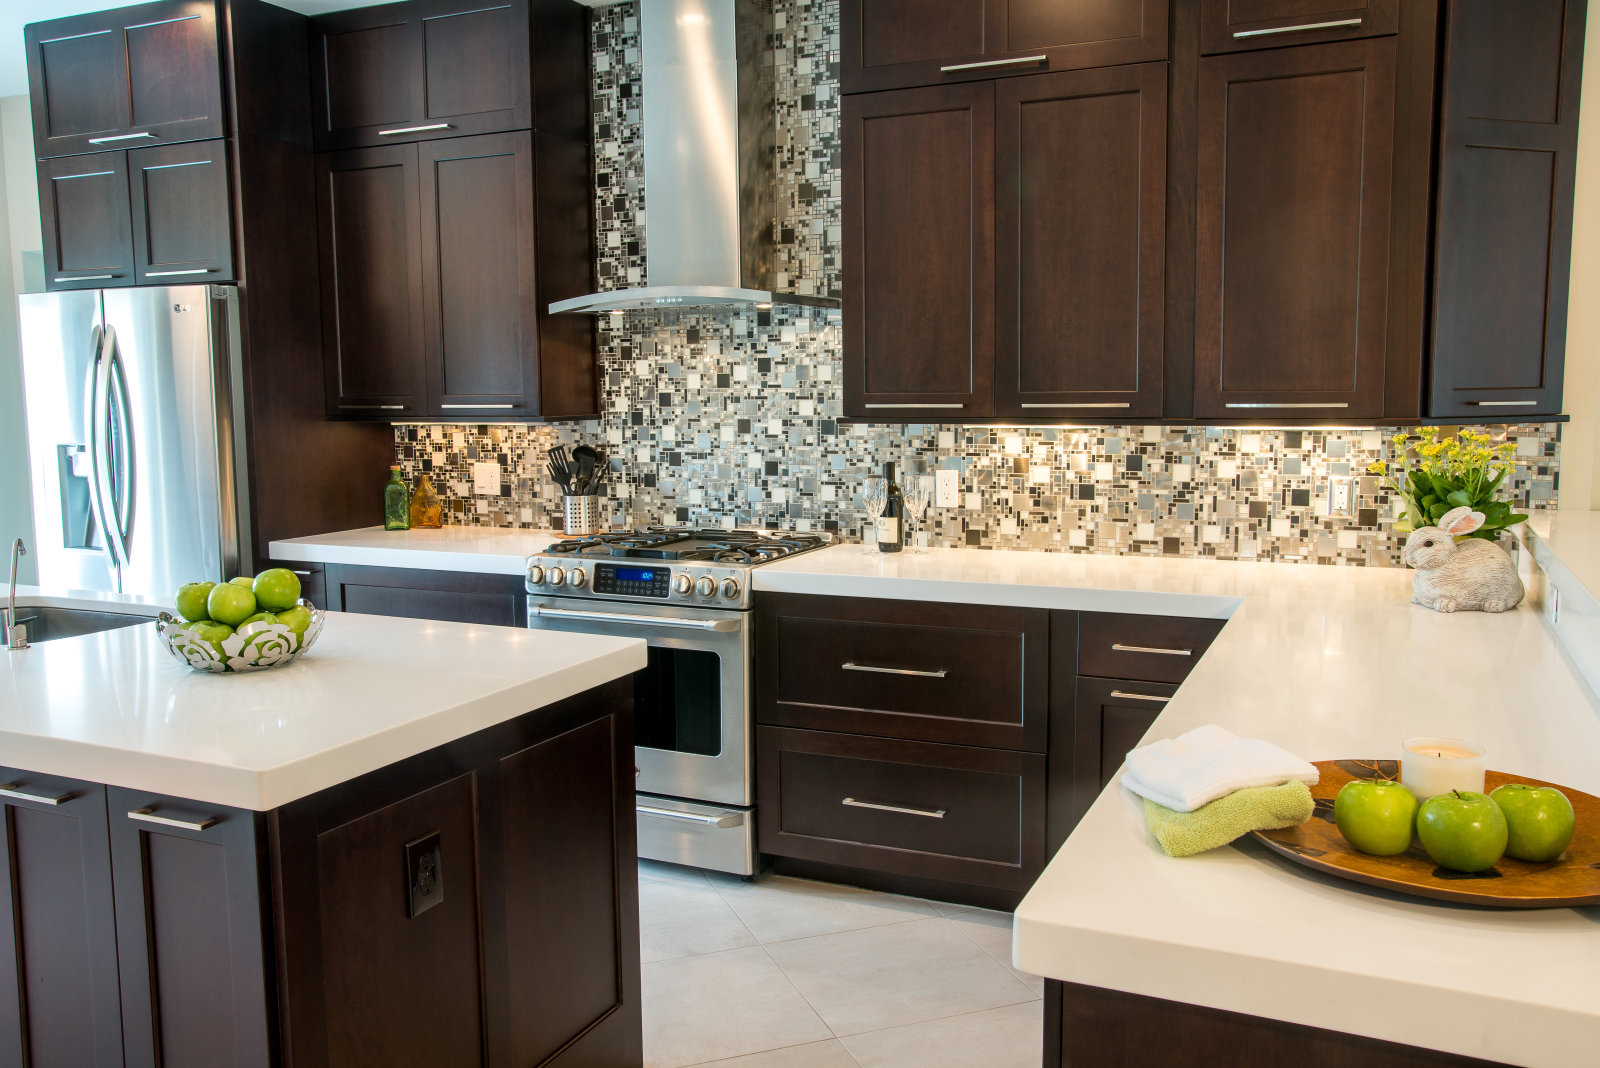 Malloy kitchen carriage house custom homes interiors inc for Carriage house kitchen cabinets